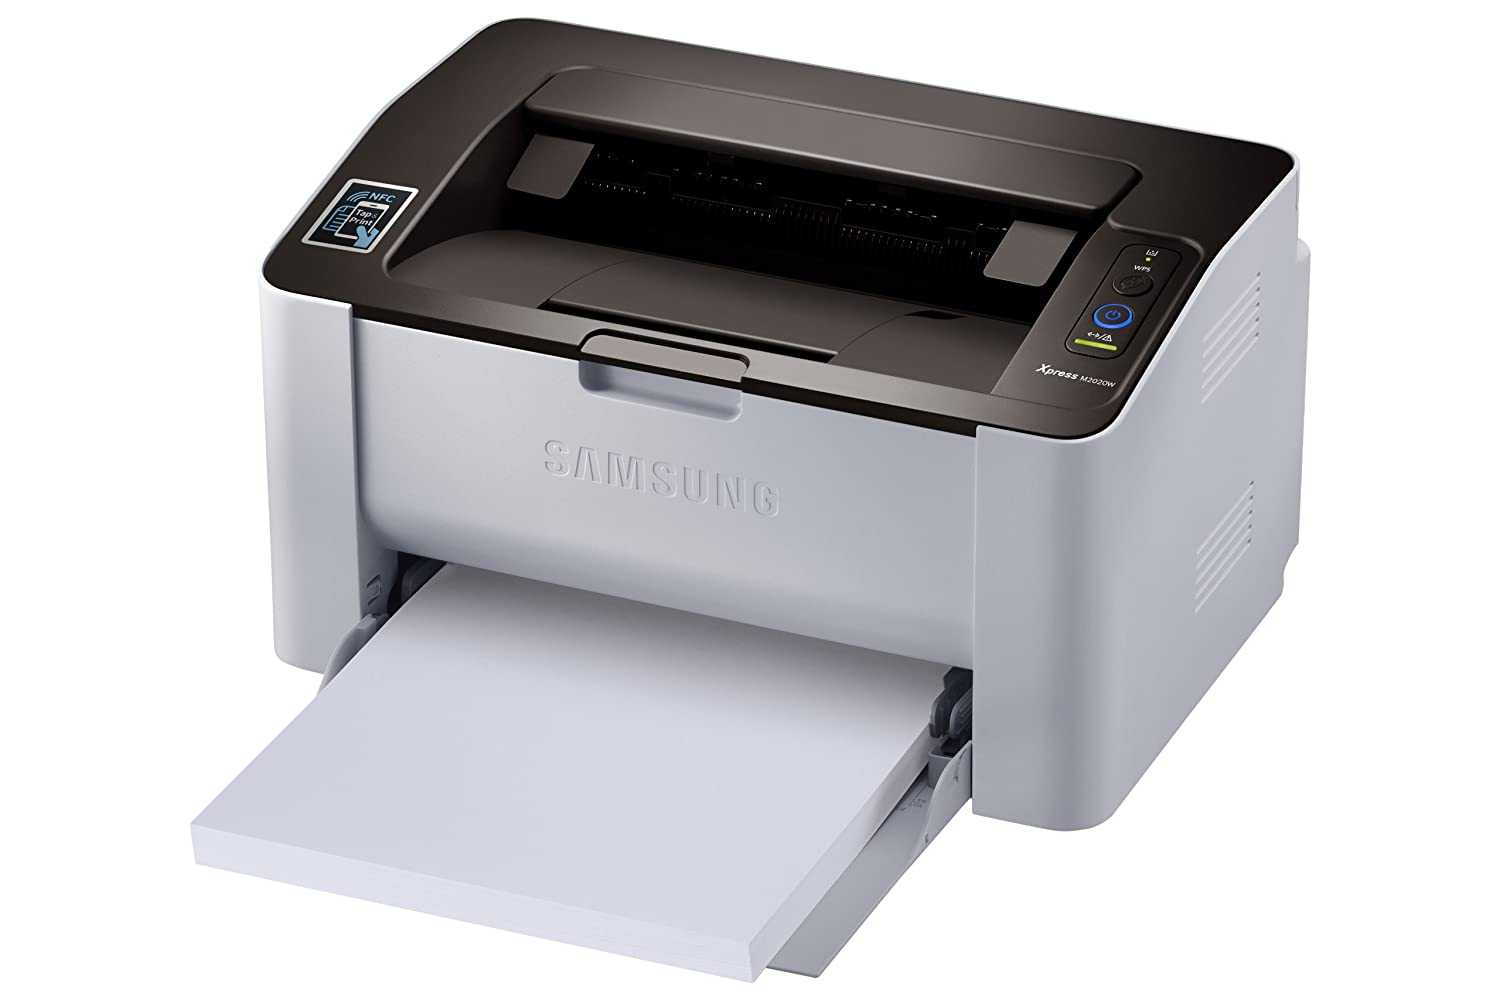 Samsung monochrome printer is good for the office, dorm room, or business.